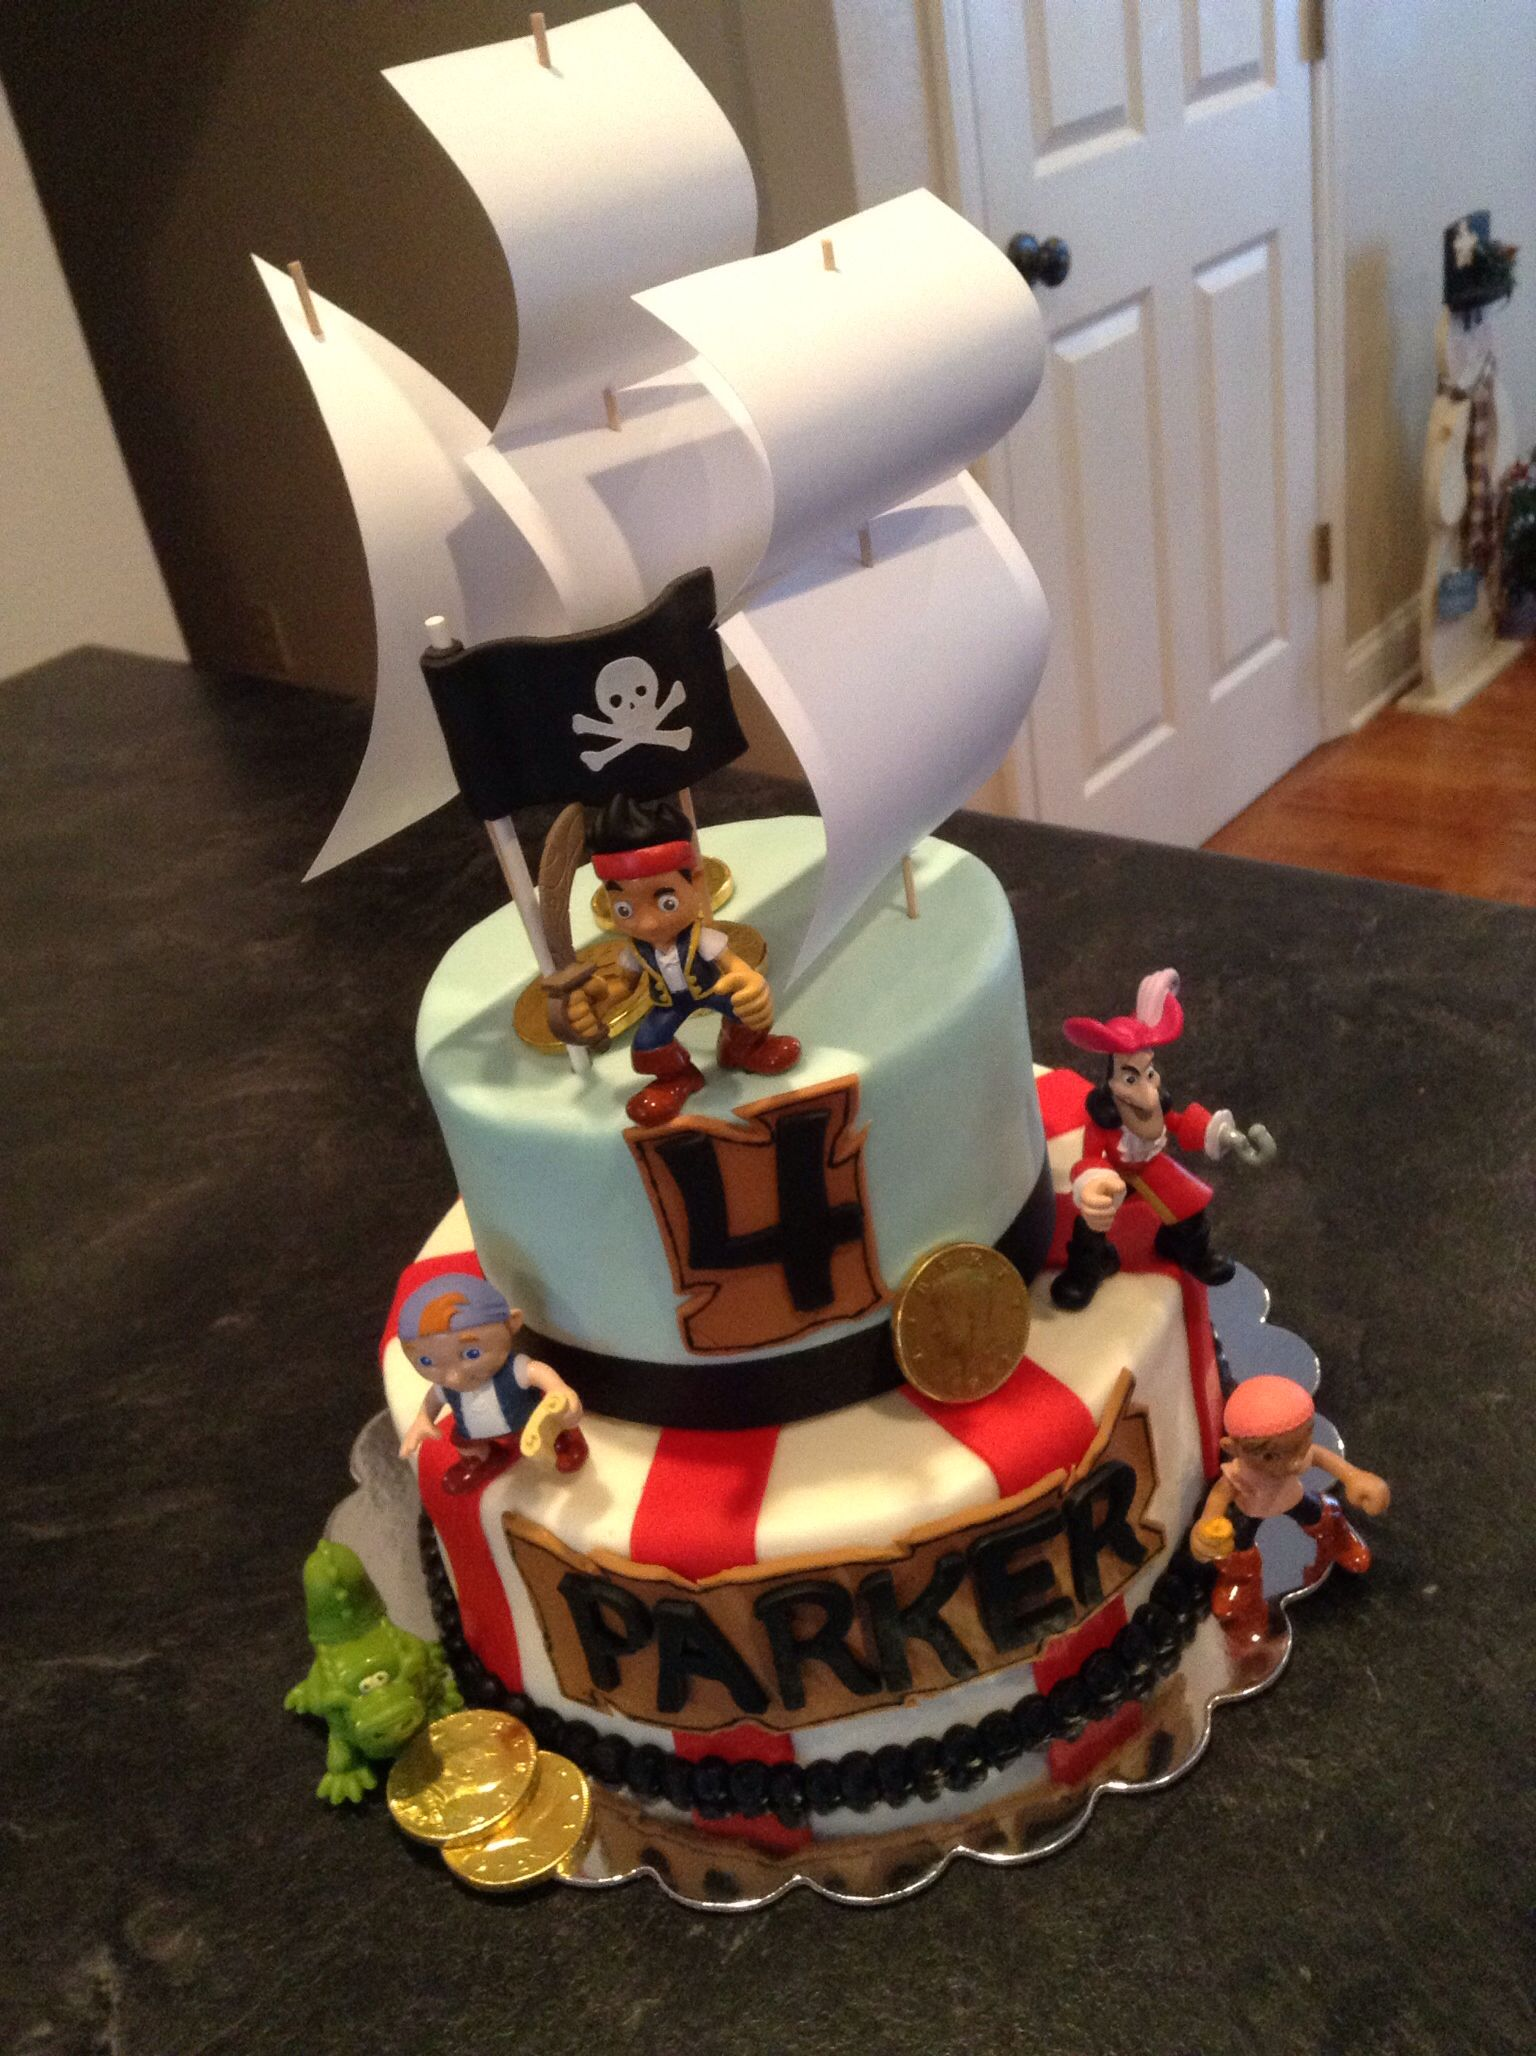 Jake and the Neverland Pirates Cake Dream Cakes by Melissa